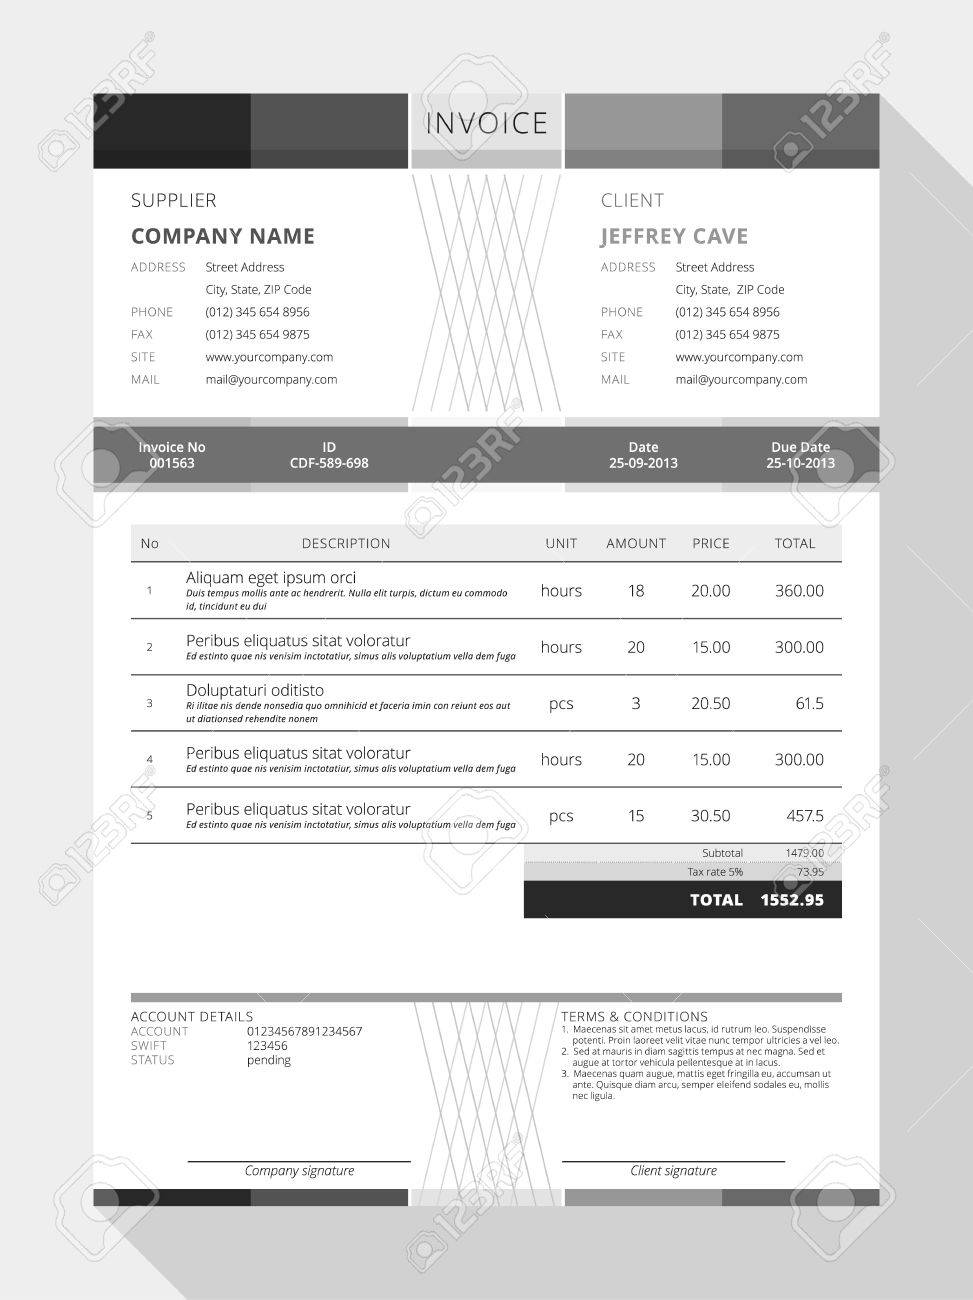 Howcanigettallerus  Winsome Design An Invoice  Professional Graphic Design Invoice  With Interesting Vector Customizable Invoice Form Template Design Vector   Design An Invoice With Adorable Customized Invoice Books Also At T Invoice In Addition International Invoice Template And Invoice Due As Well As What Is A Car Invoice Additionally Invoice Insurance From Happytomco With Howcanigettallerus  Interesting Design An Invoice  Professional Graphic Design Invoice  With Adorable Vector Customizable Invoice Form Template Design Vector   Design An Invoice And Winsome Customized Invoice Books Also At T Invoice In Addition International Invoice Template From Happytomco